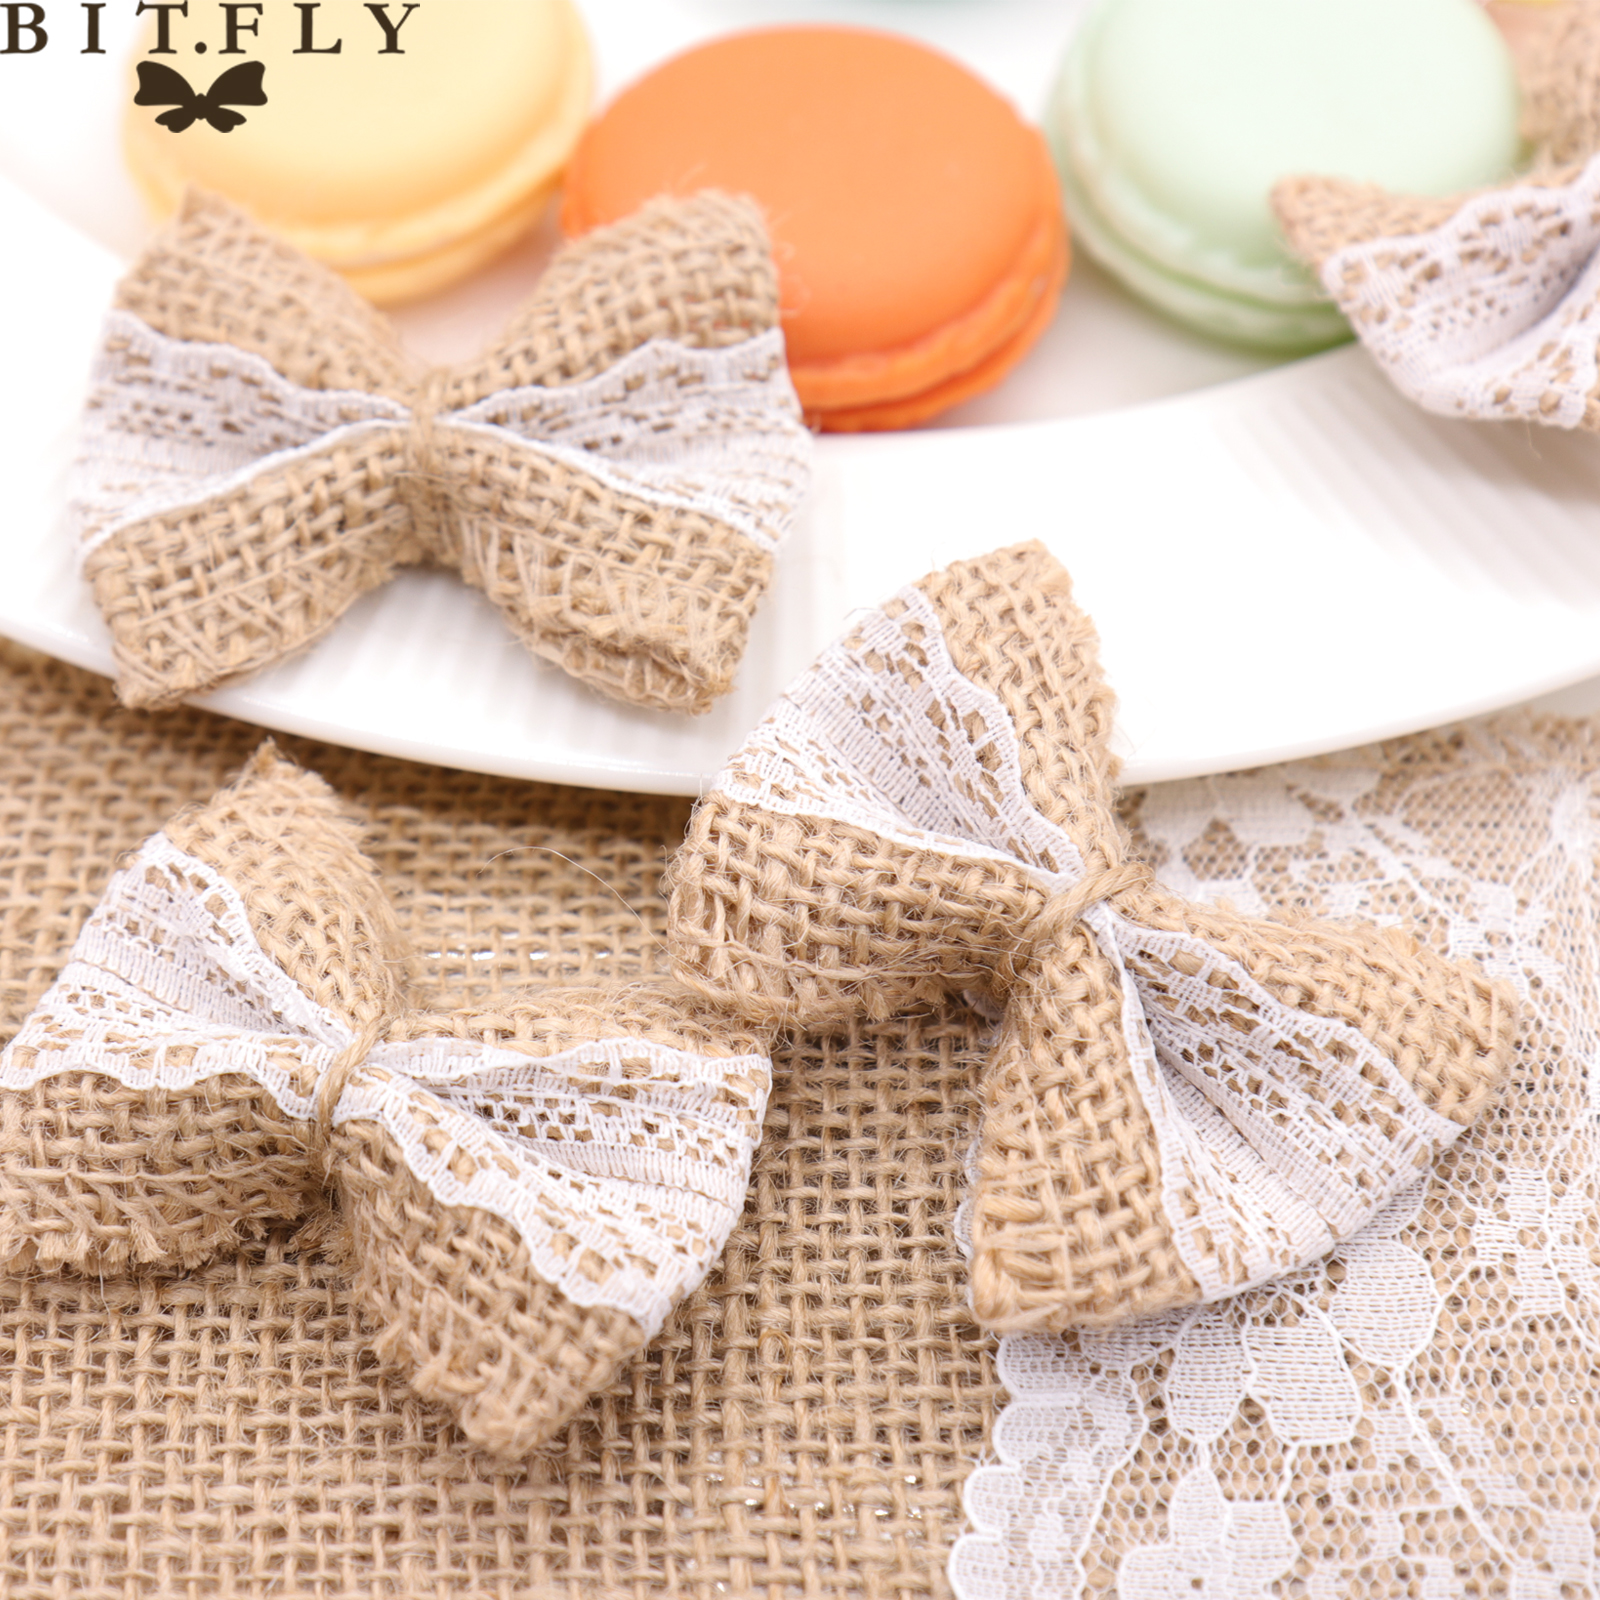 Diy Burlap Wedding Ideas: 10 Pcs Hessian Burlap White Lace Bow Party DIY Decoration